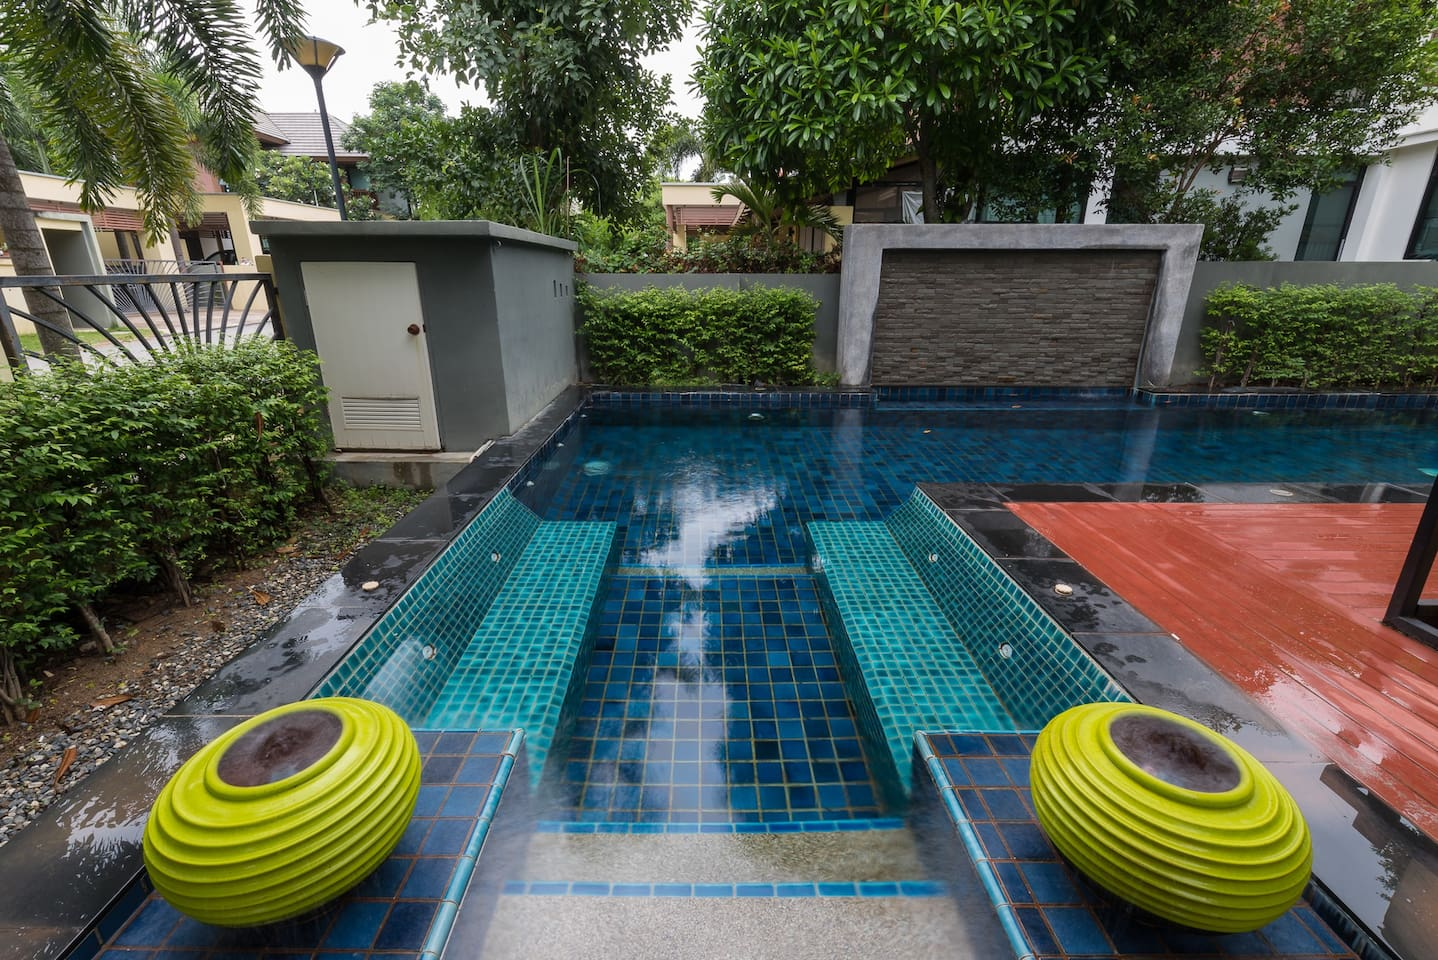 Welcome to our lovely apartment with sparkling pool